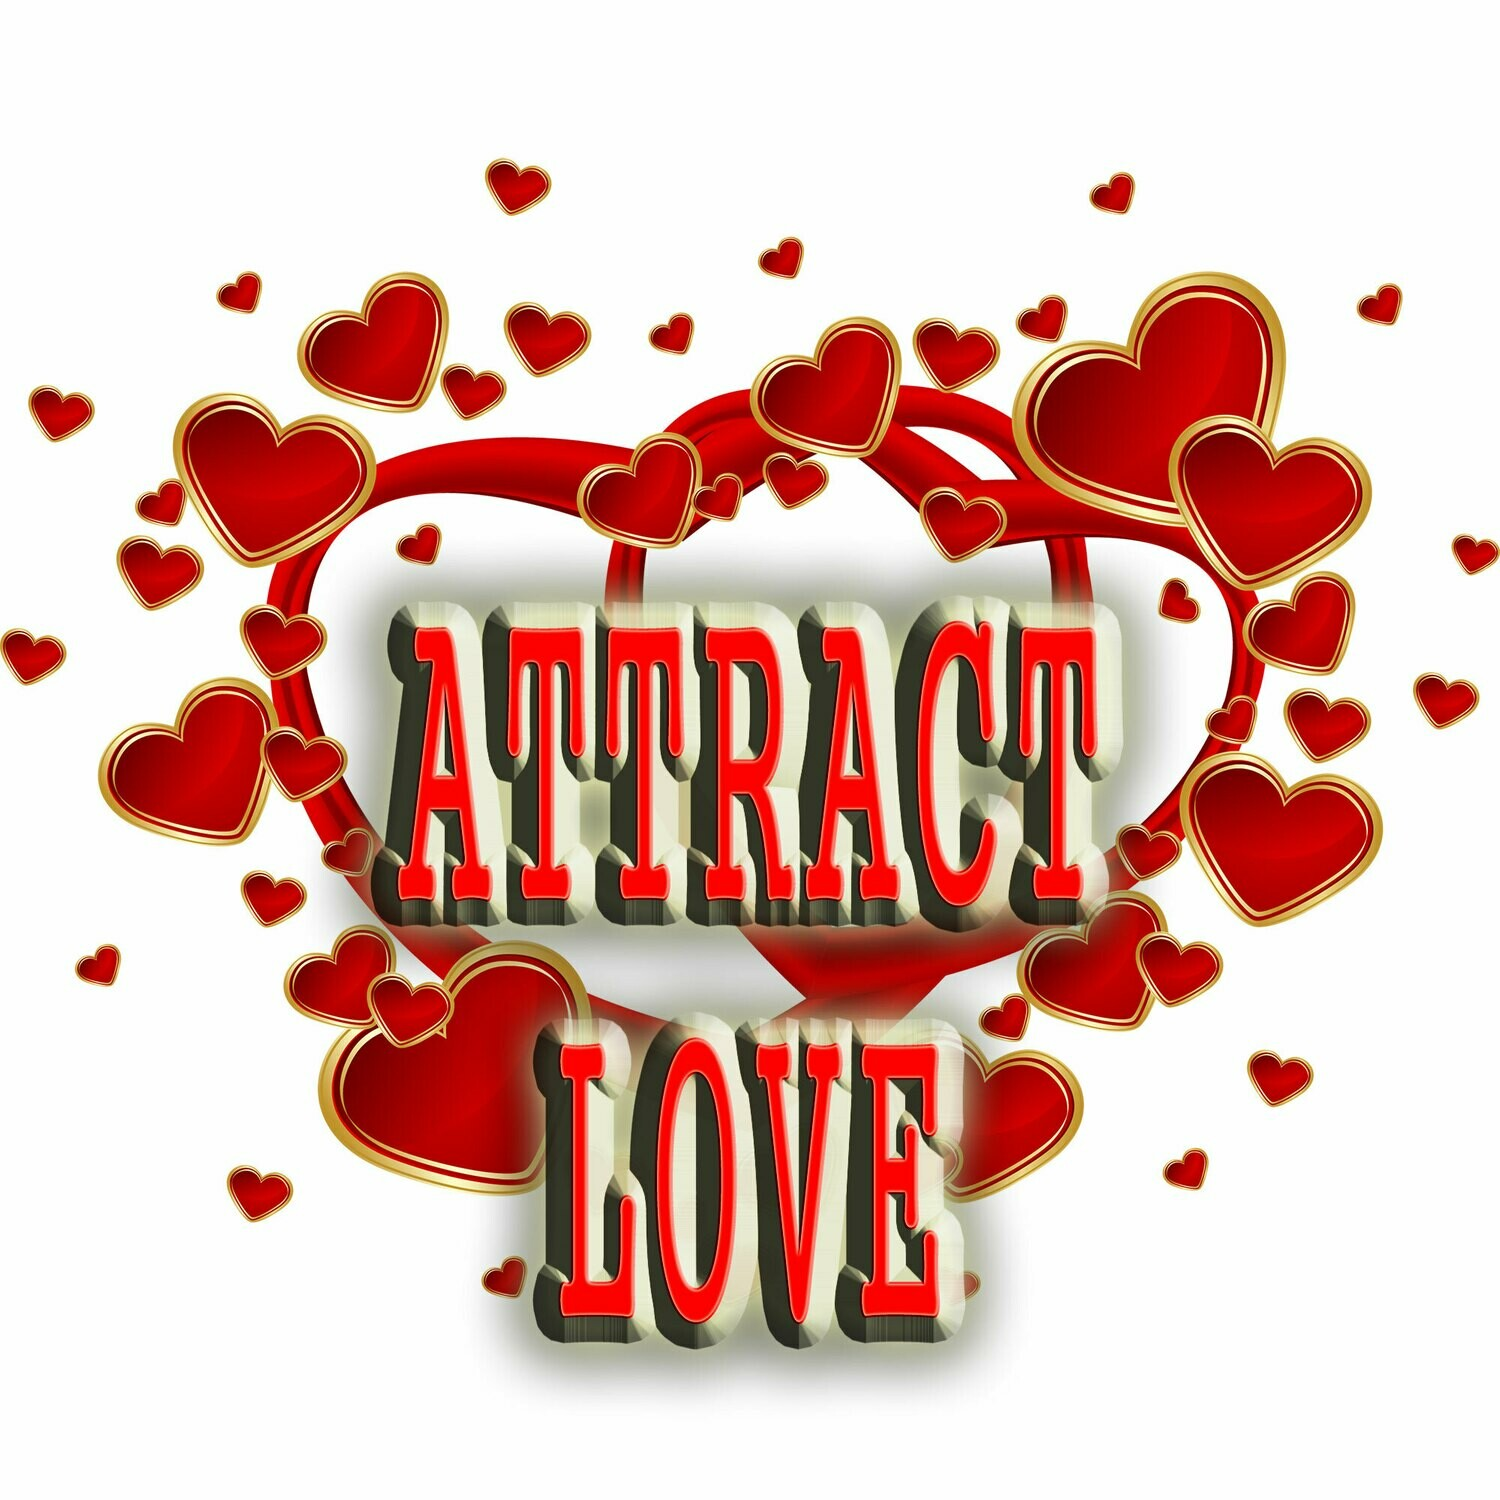 The Powerful Attraction of Love